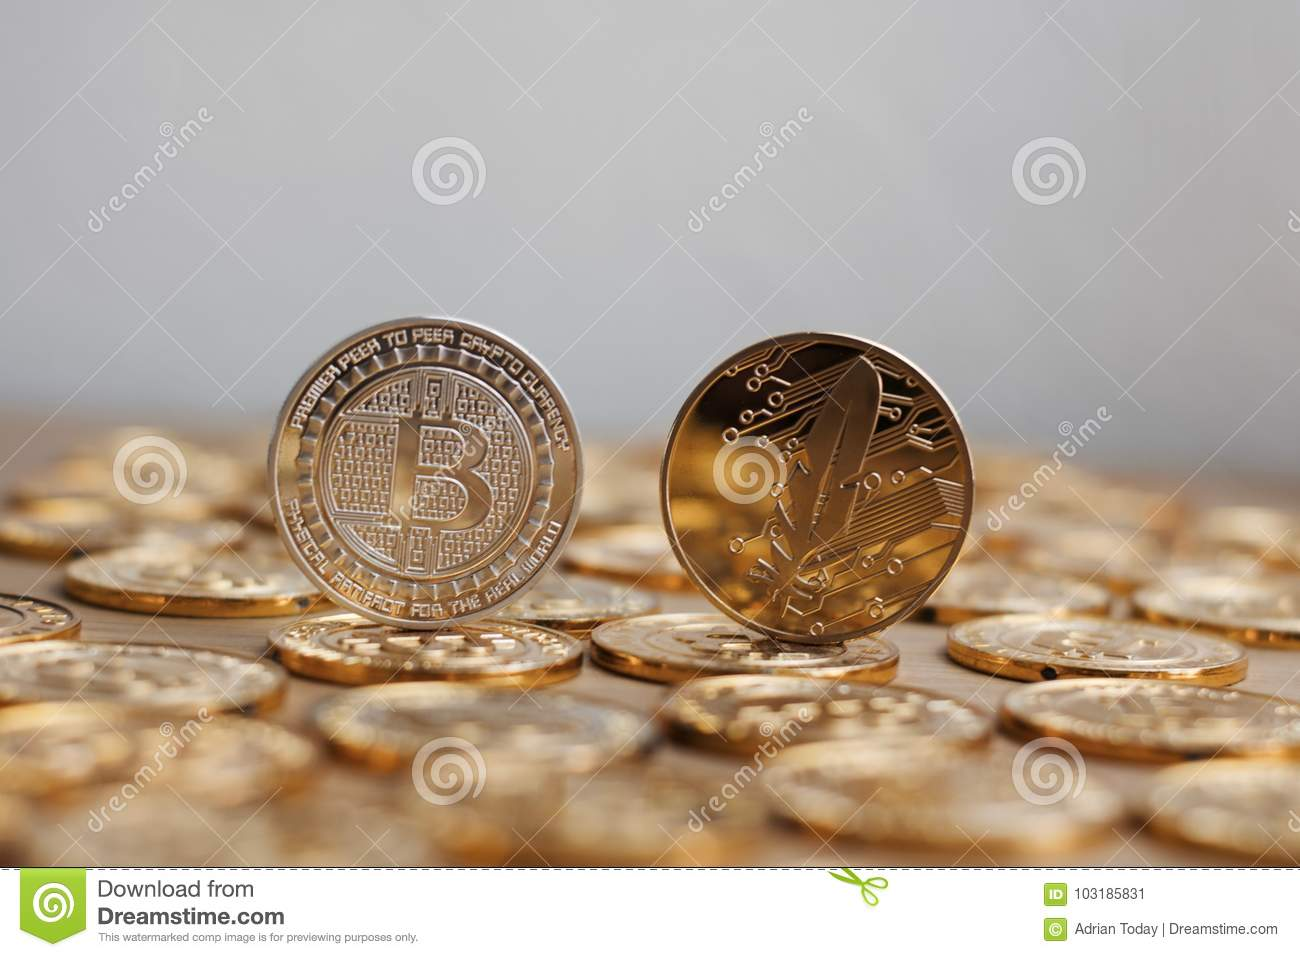 Digital Currency Physical Bitcoin Coin Gold Background Coins Concept